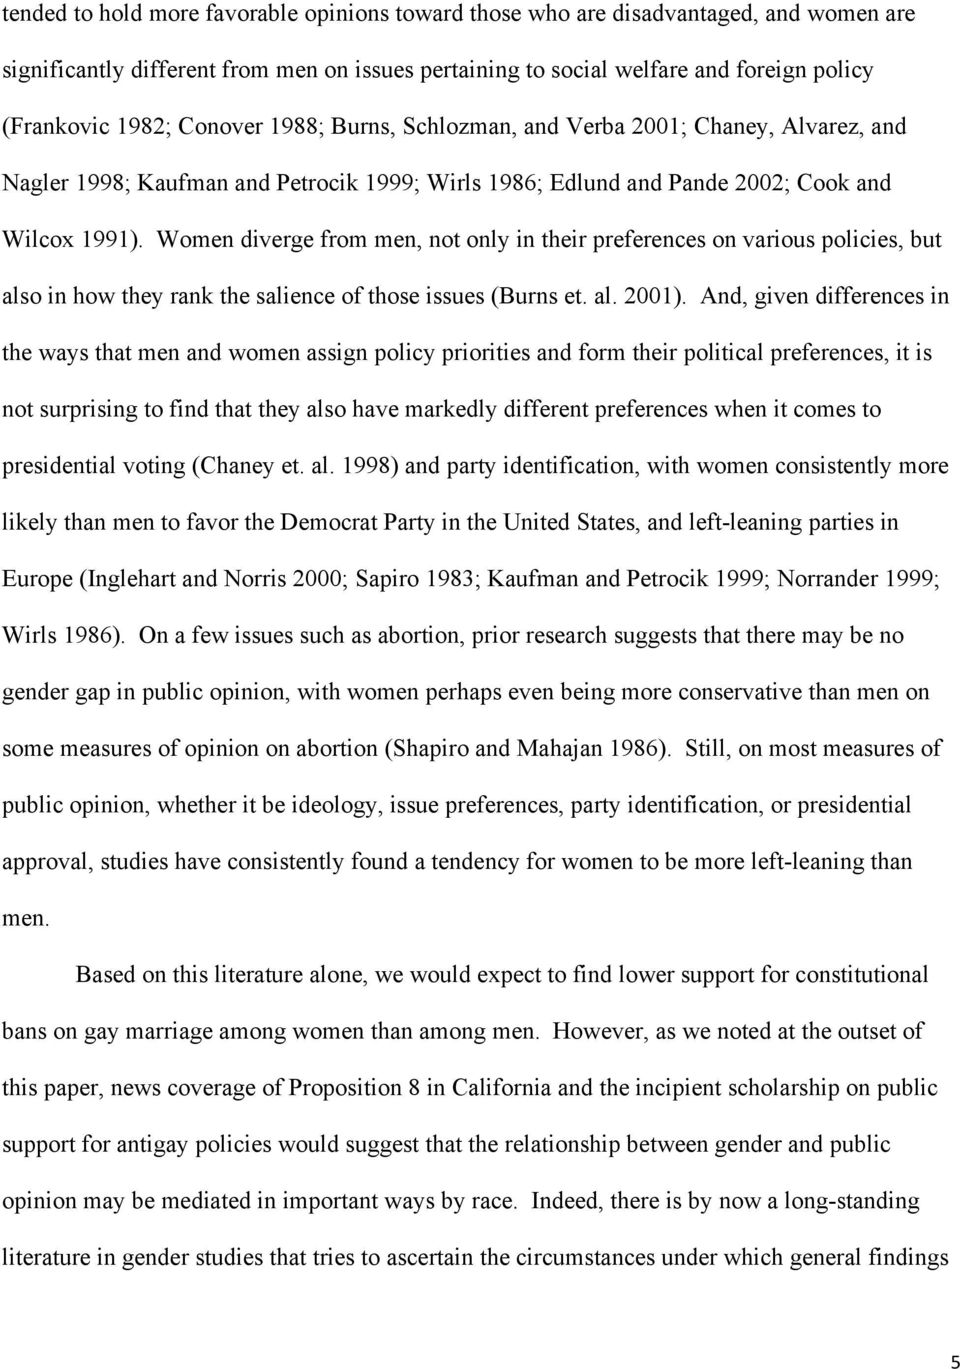 Women diverge from men, not only in their preferences on various policies, but also in how they rank the salience of those issues (Burns et. al. 2001).